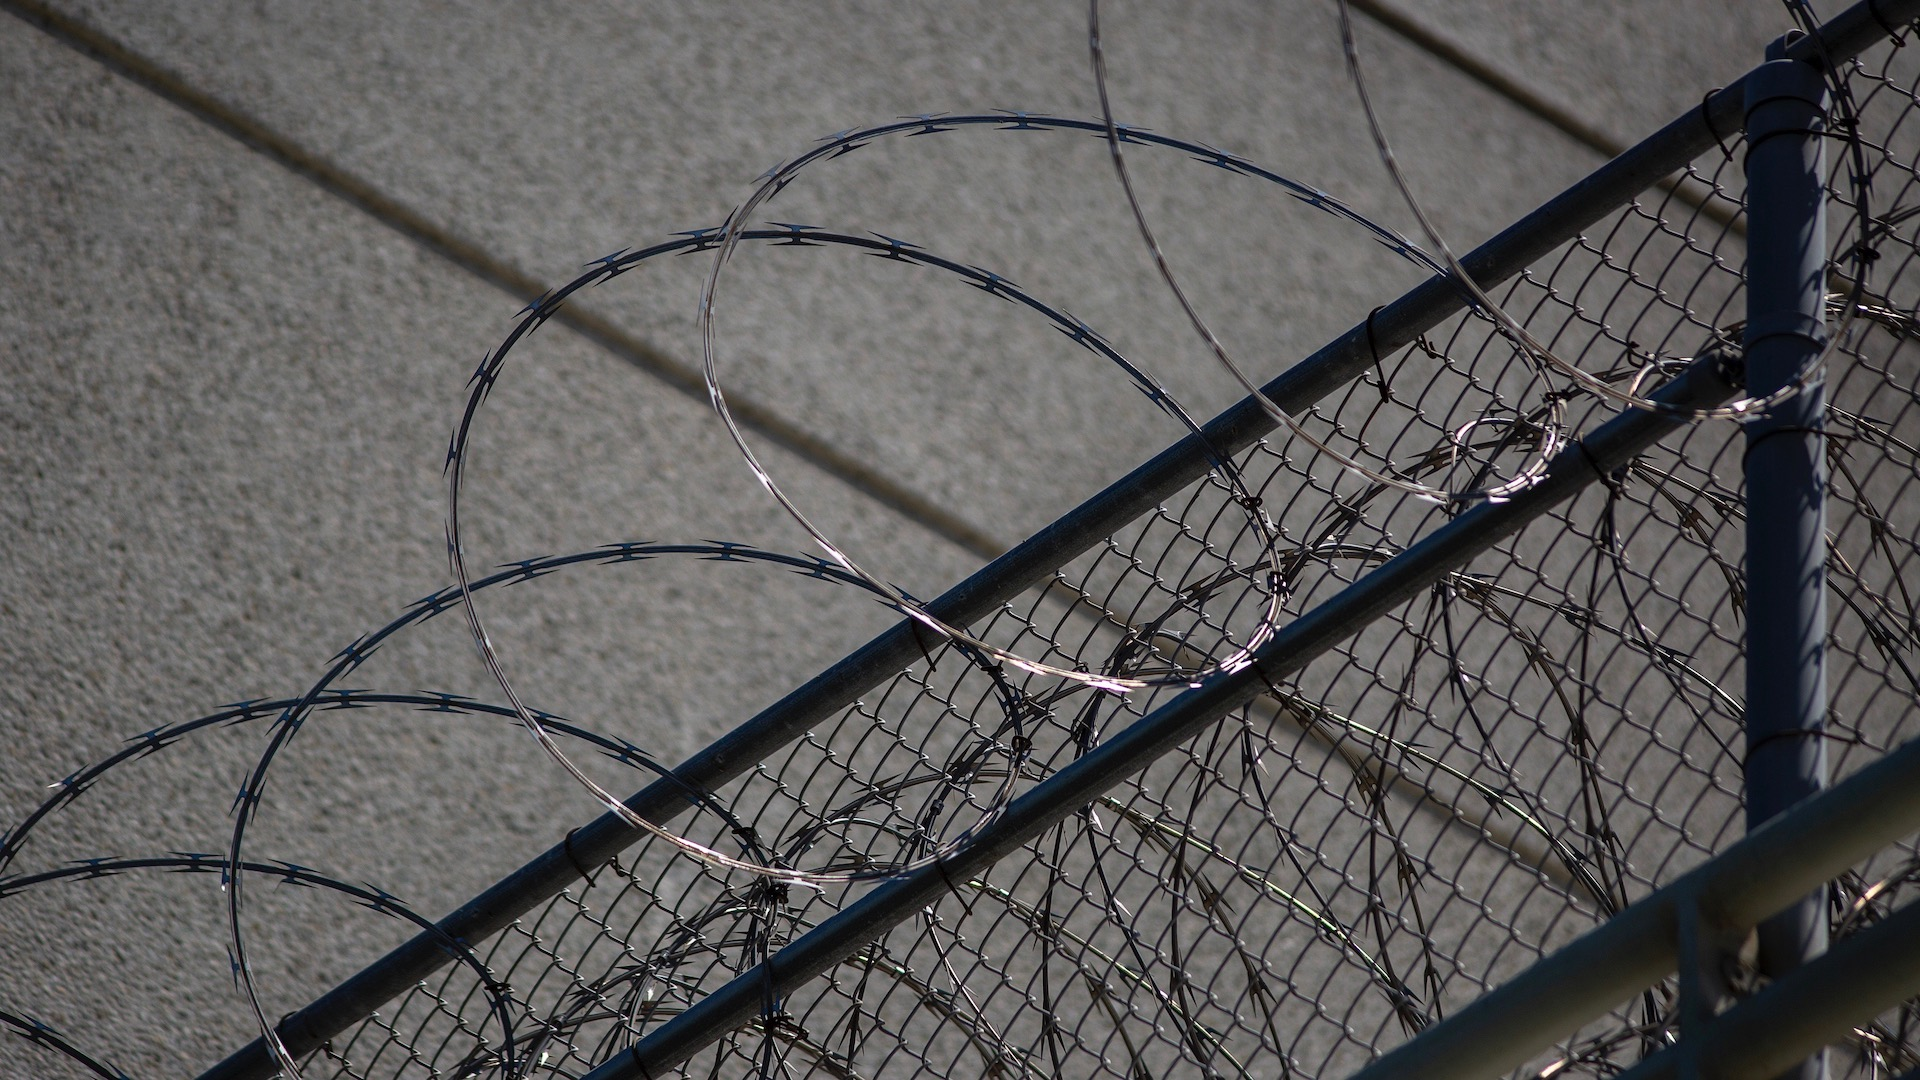 California to Release Thousands of Prison Inmates Over COVID-19 Concerns